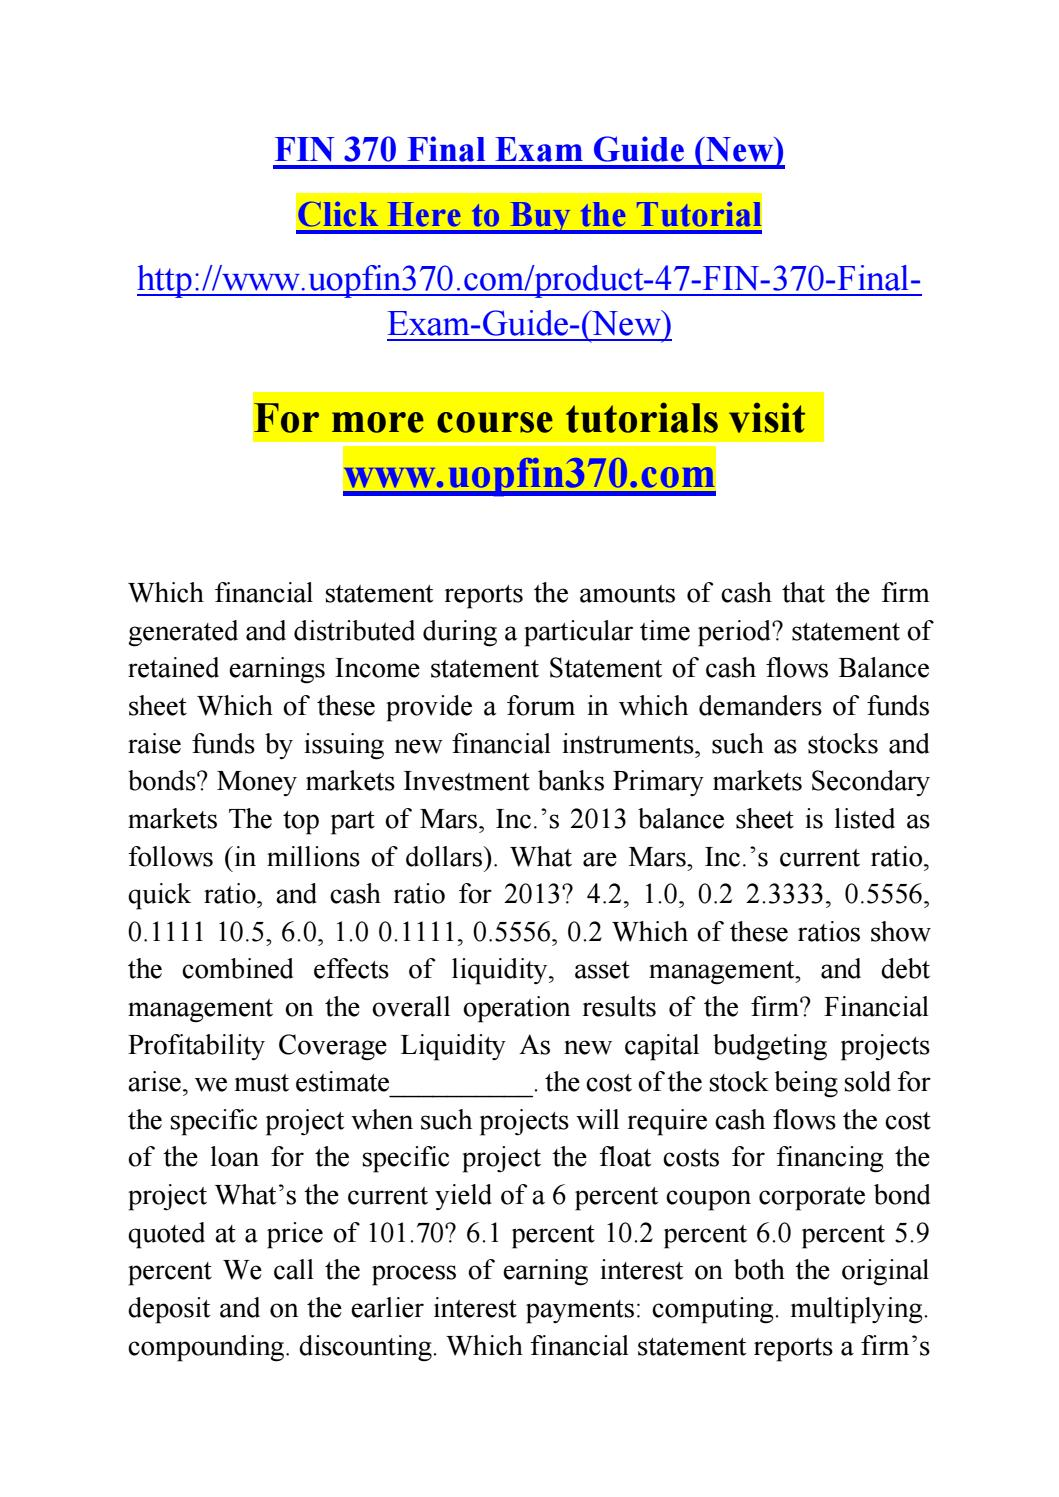 fin 370 finance for business final exam Free essay: fin 370 entire course finance for business with final exam – new updated.